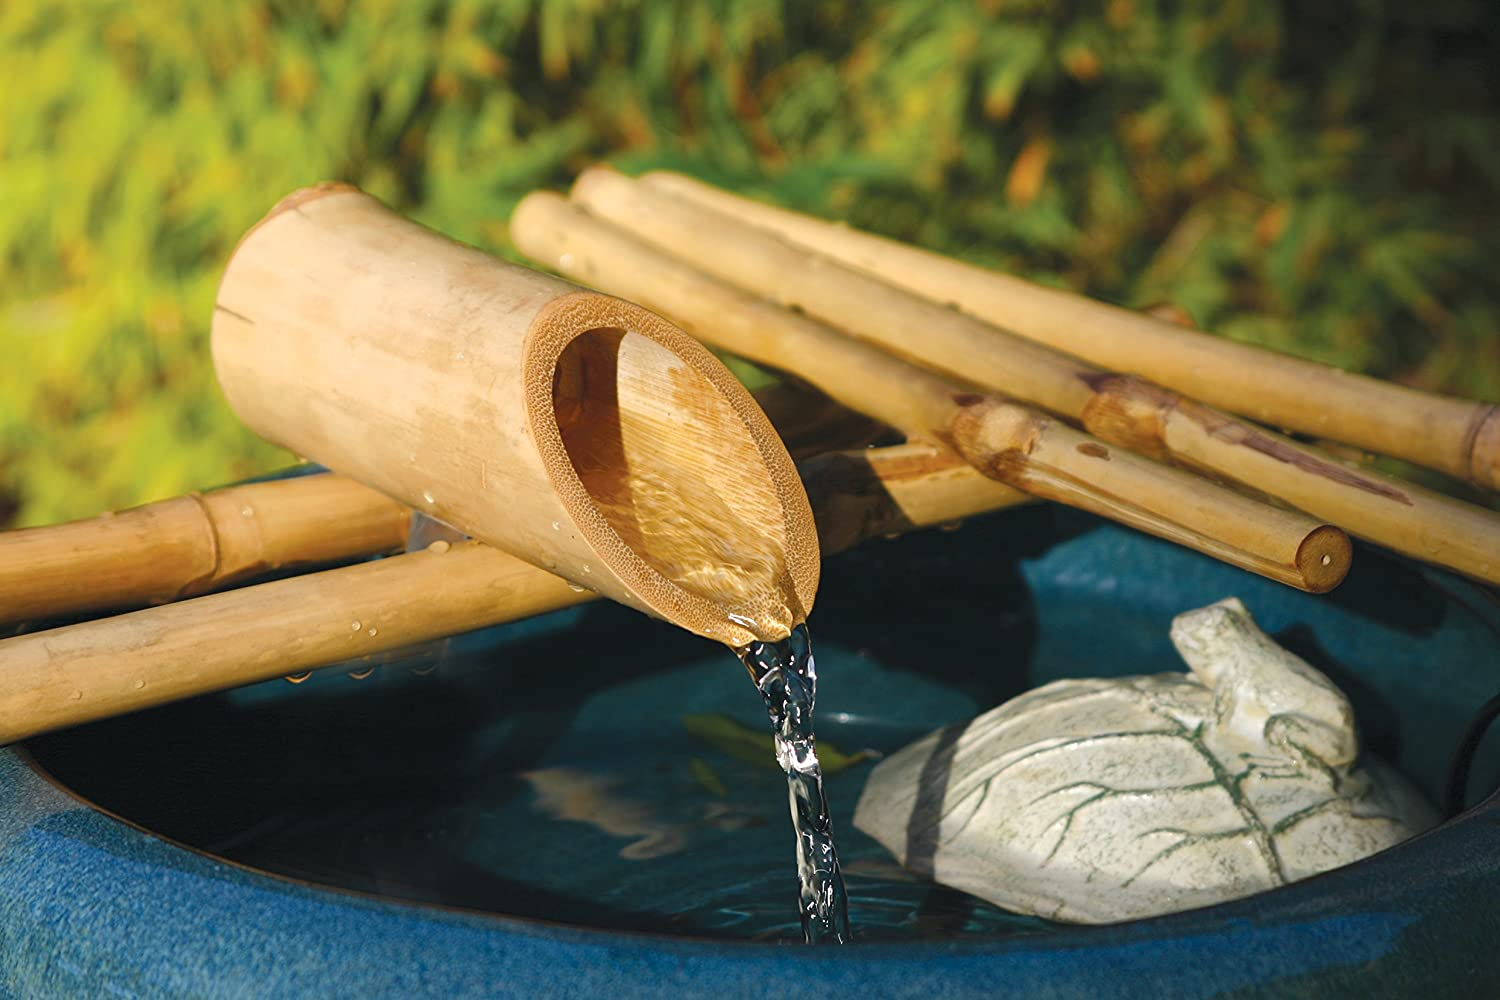 Bamboo Accents Water Fountain Spout, Complete Kit includes Submersible Pump for Easy Install, Handmade Indoor/Outdoor Natural Split-Free Bamboo (Five Arm Design - 12 Inches)